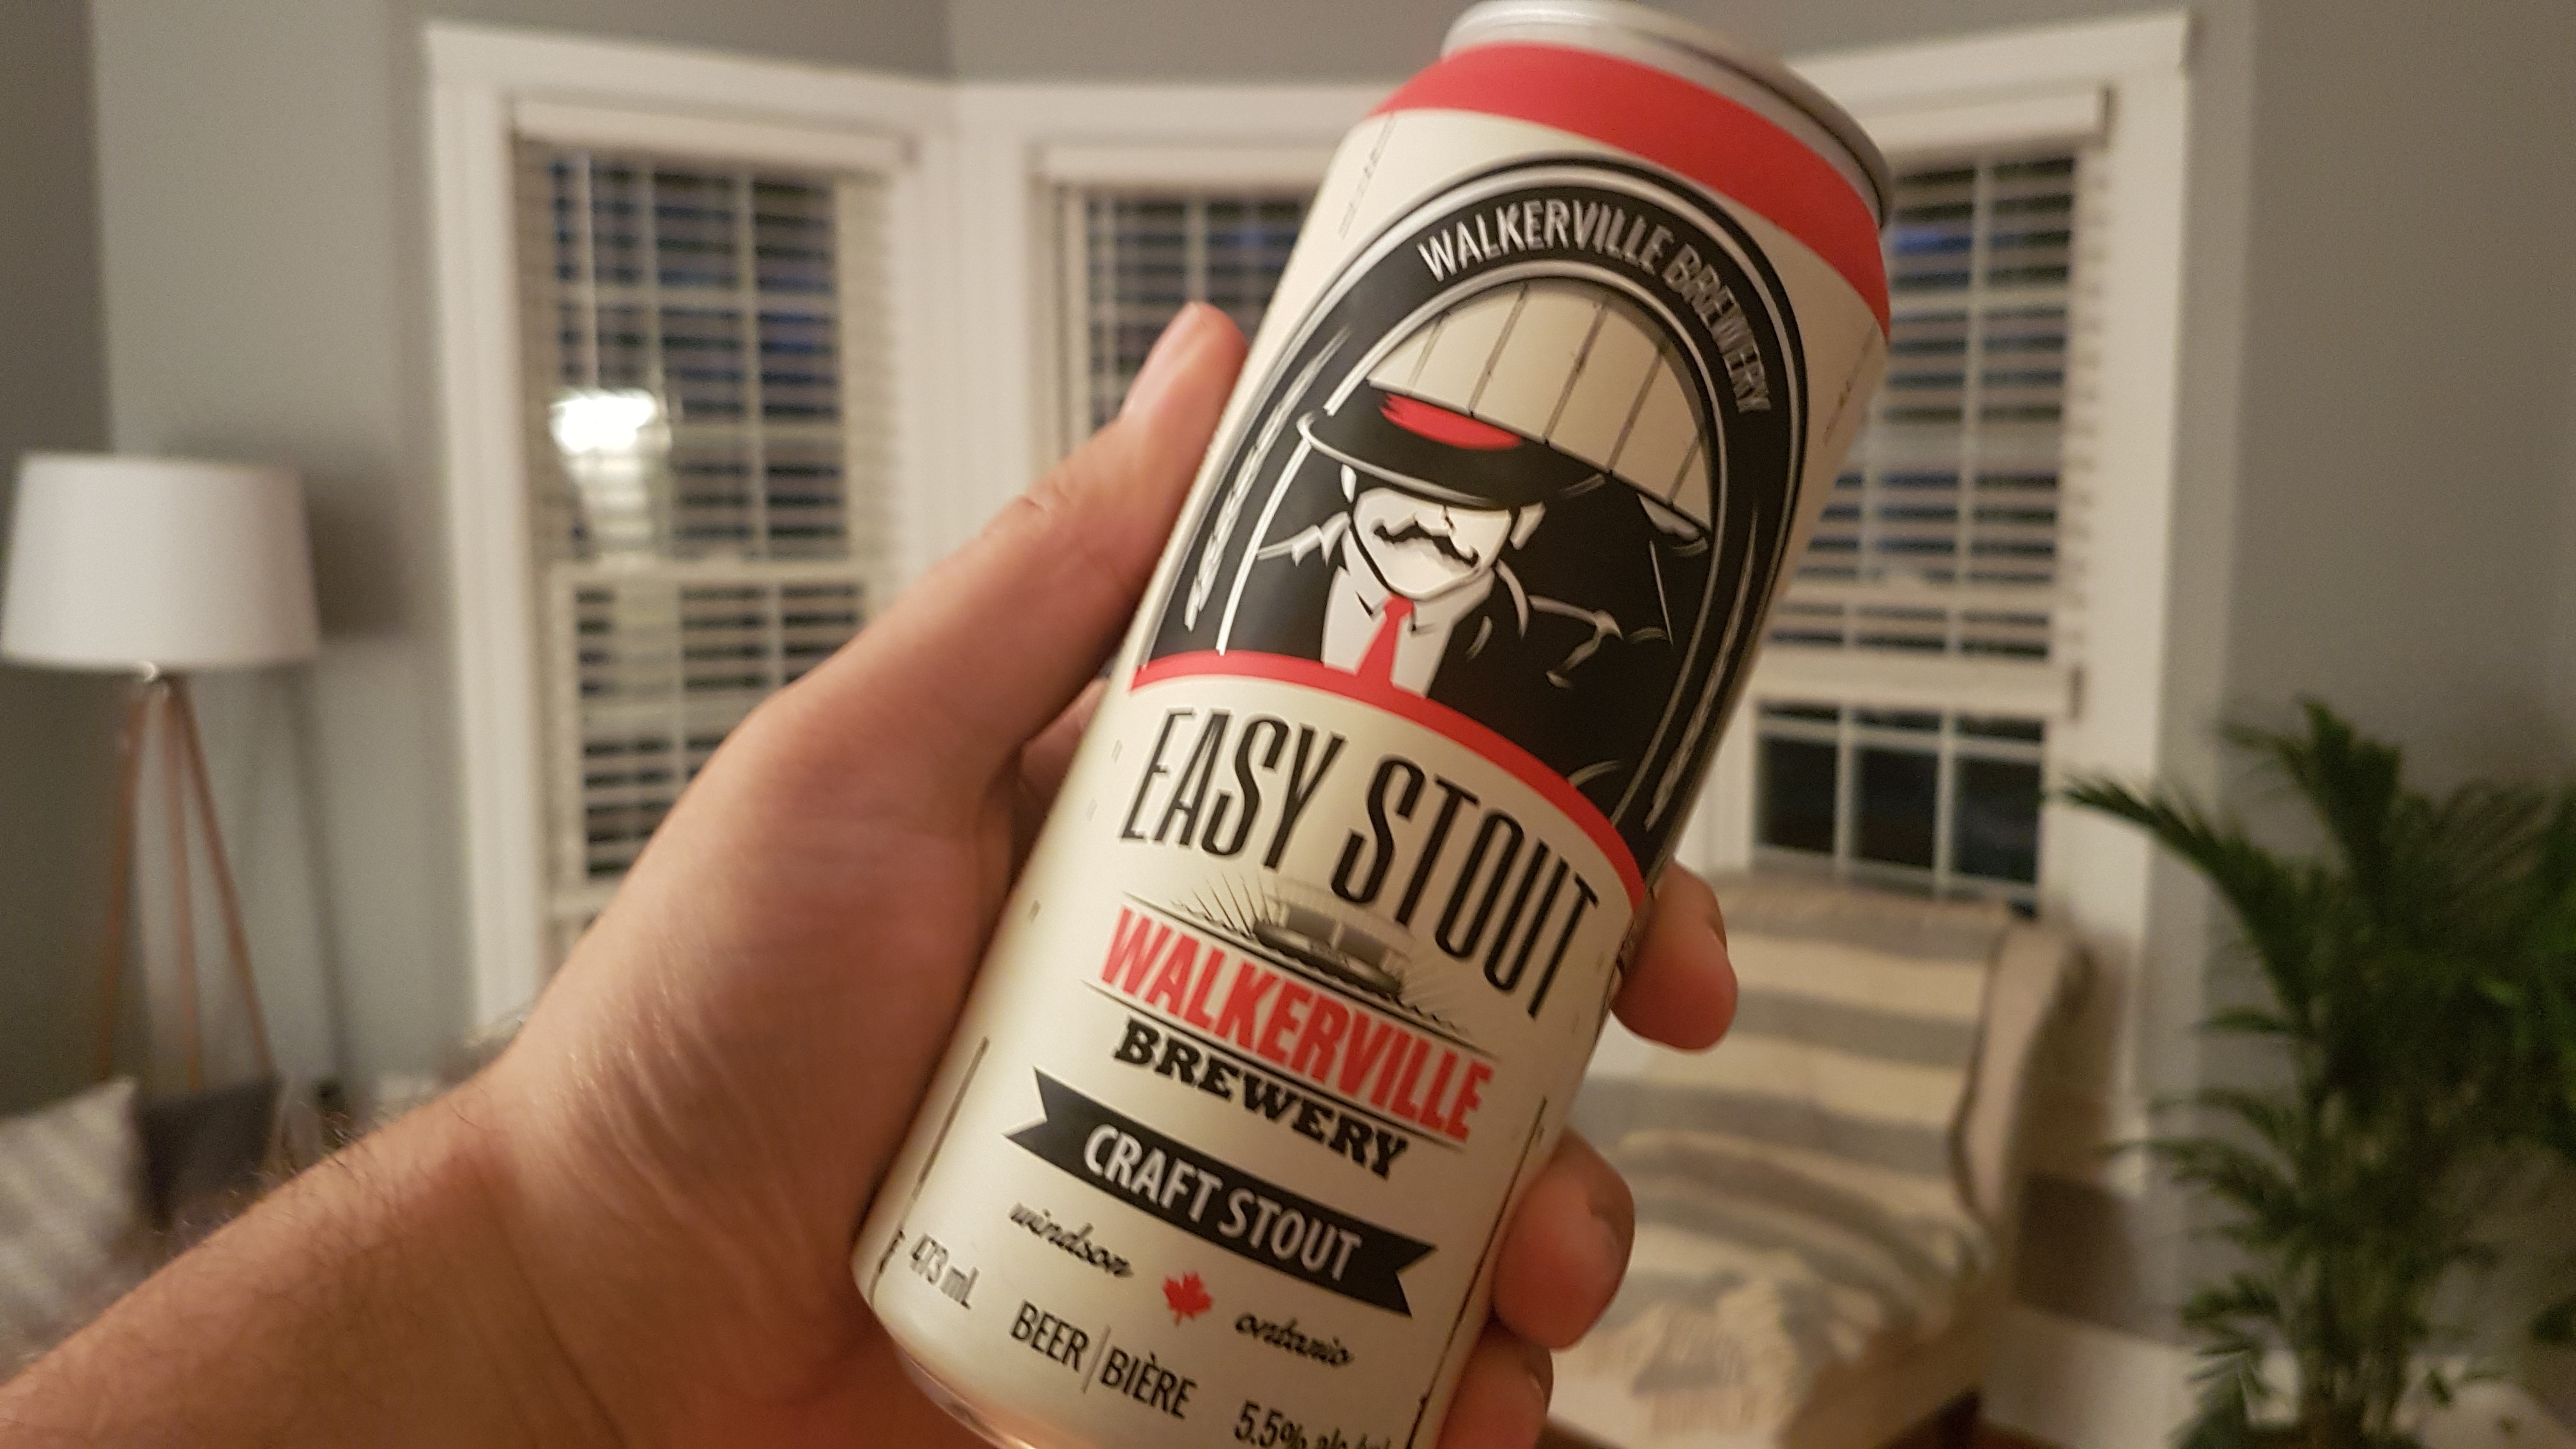 About to enjoy an Easy Stout from Walkerville Brewery